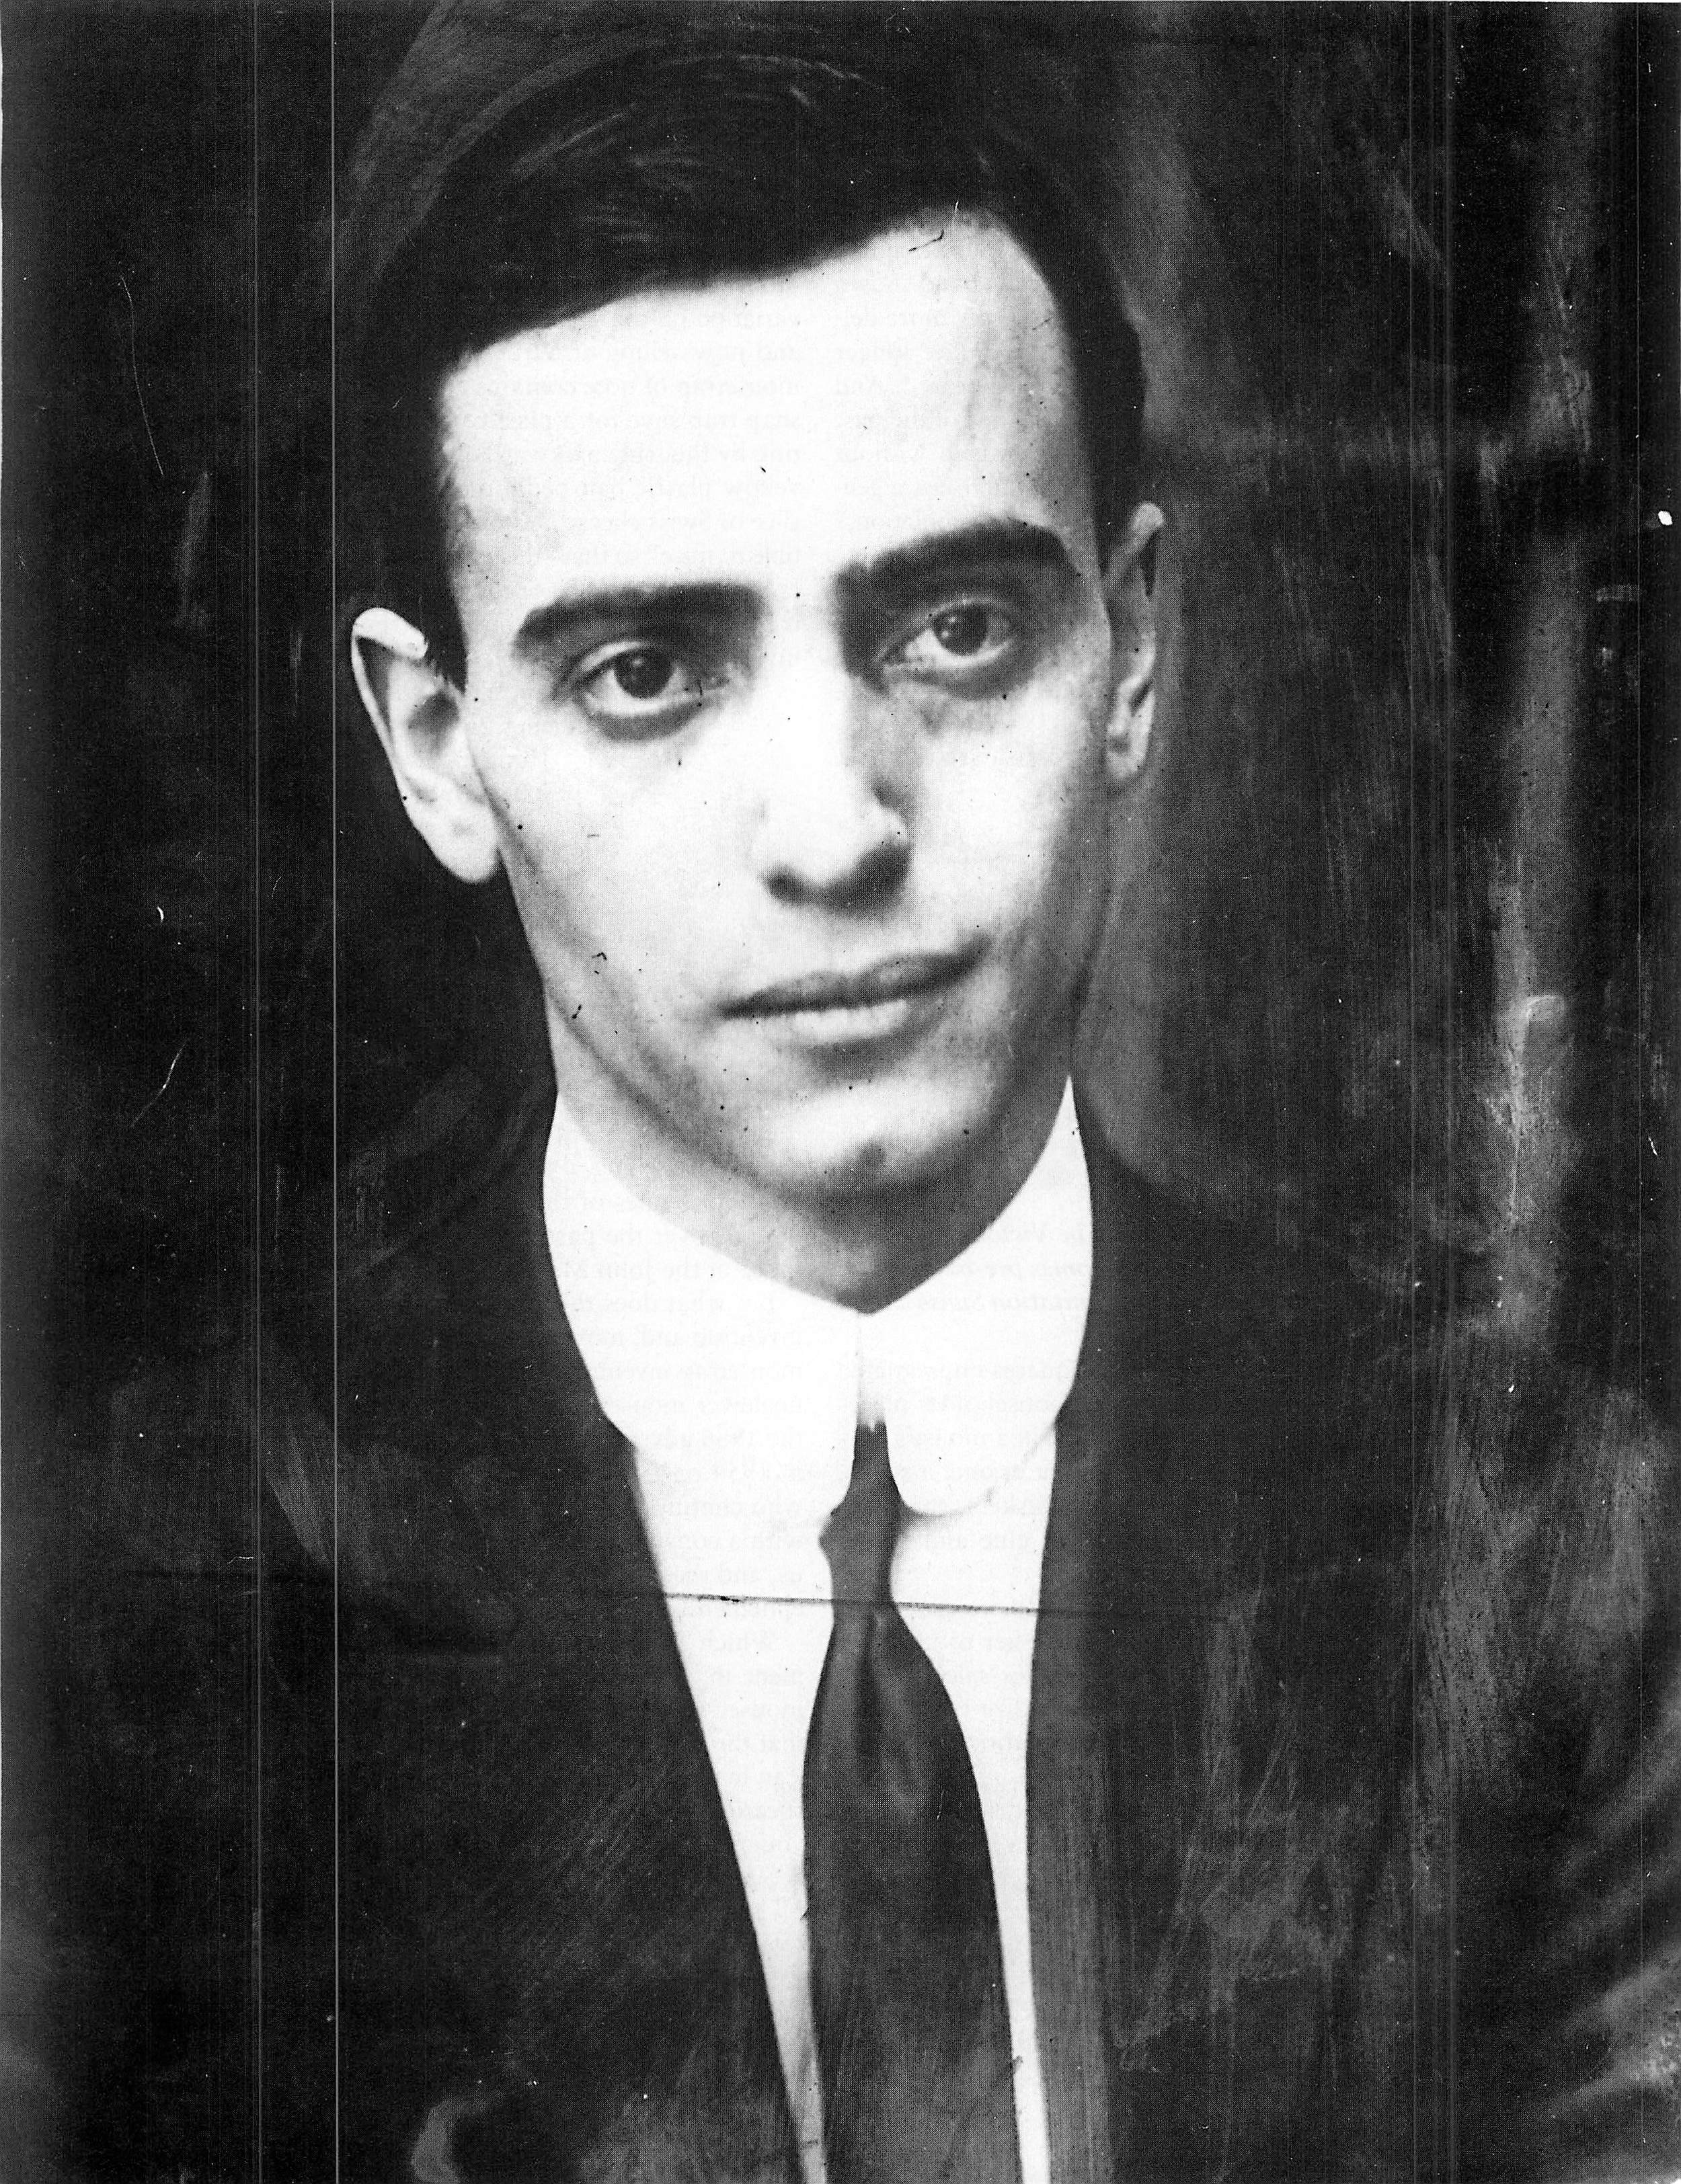 Leo Frank Was Framed According To Stephen J Goldfarb An